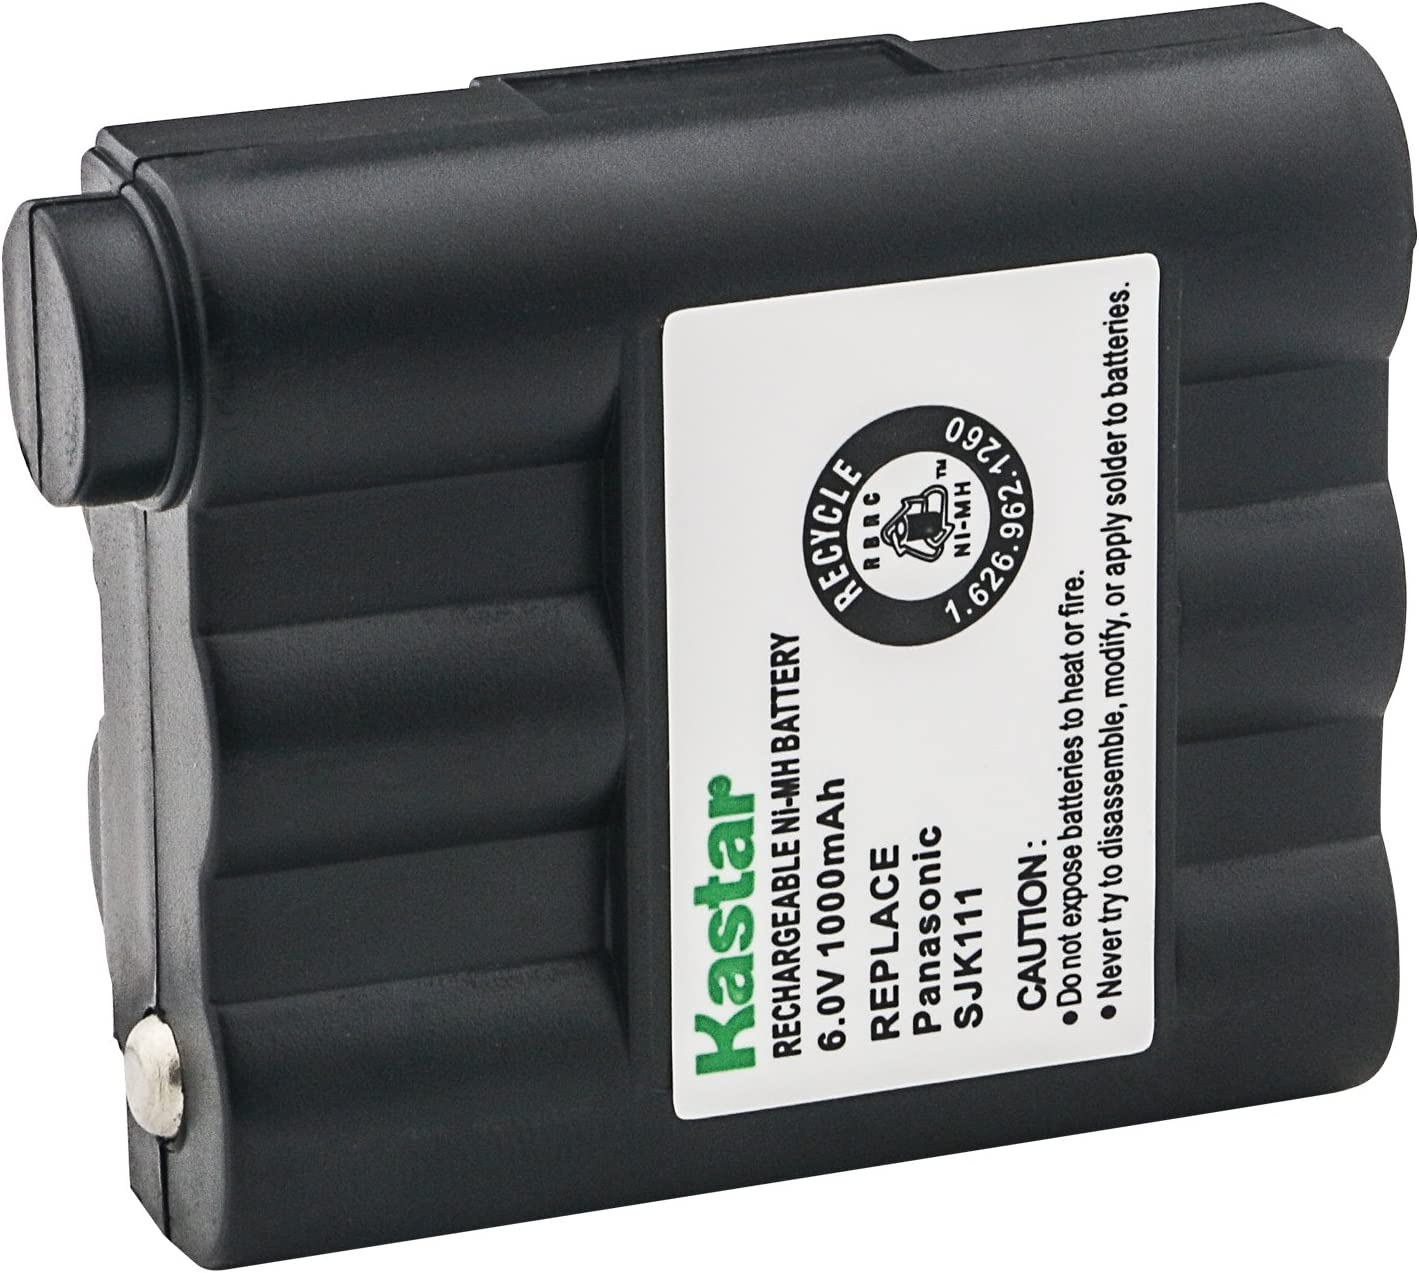 800mAh, 6V, NIMH 2 Pack Replacement Battery for Midland Nautico NT1VP Replacement Battery for Midland Two-Way Radio